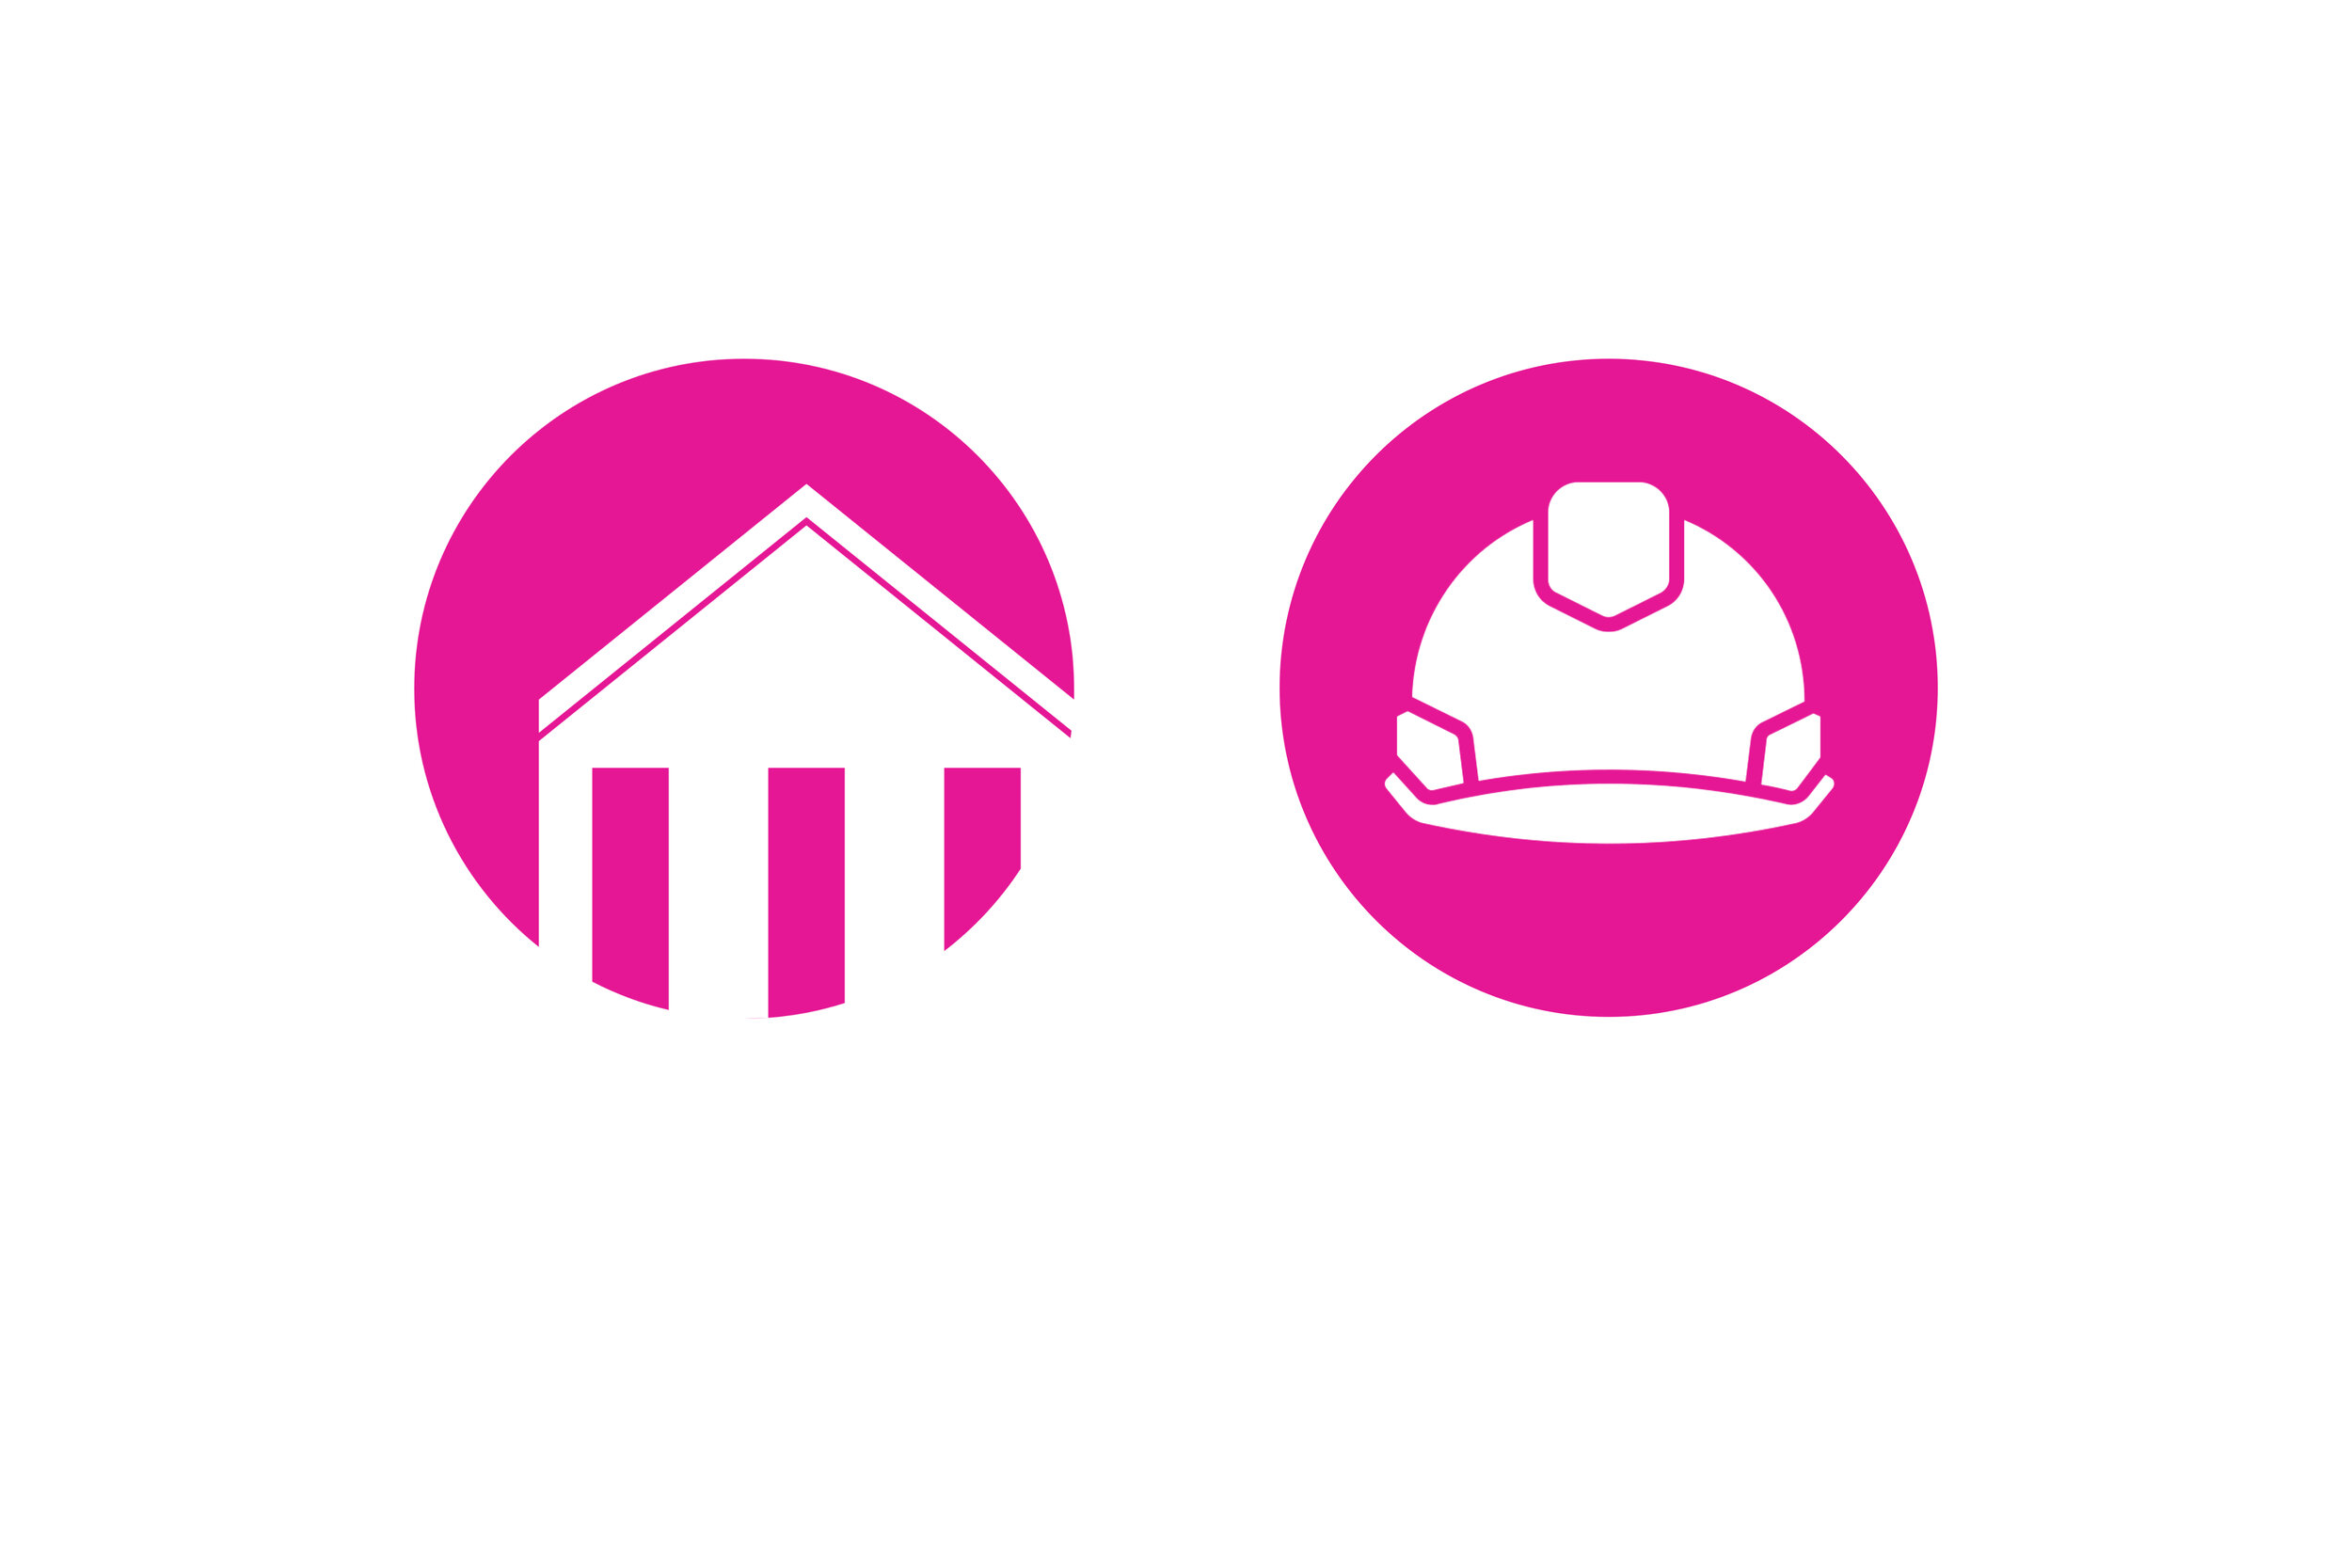 ARCH DESIGN & CM ICON (PINK)_small2.jpg